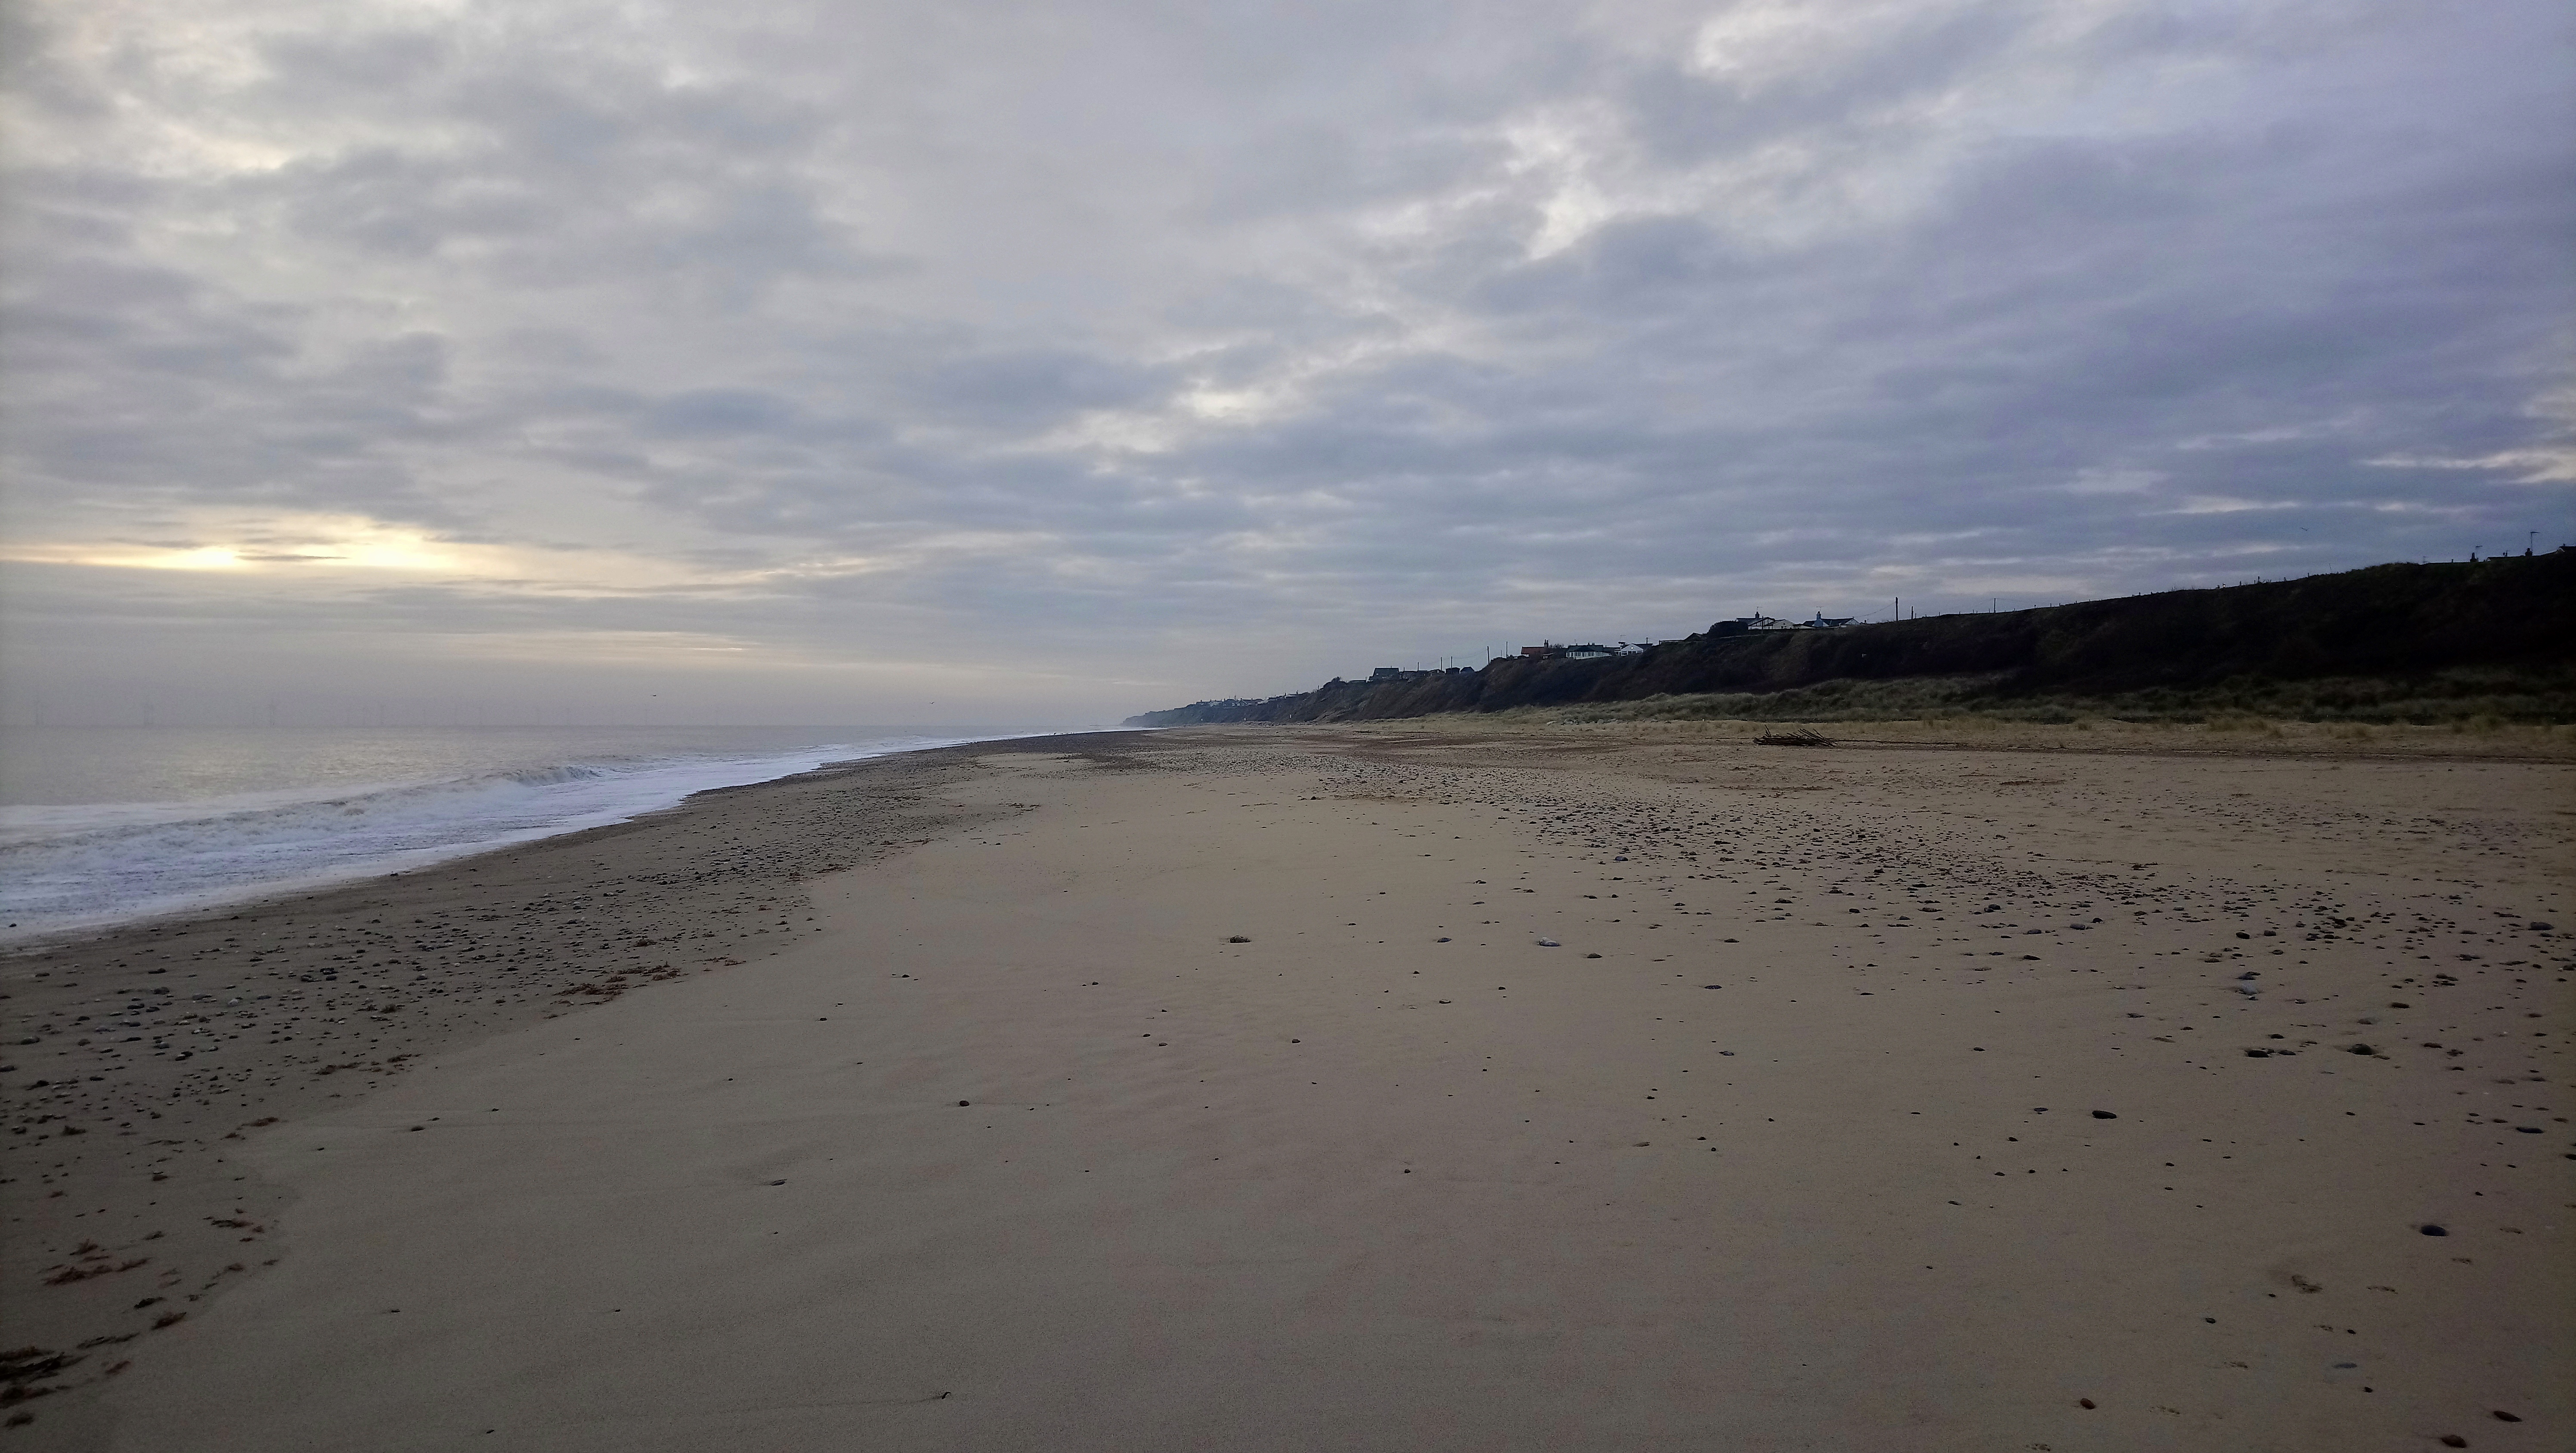 a photo of a sandy beach that stretches into the distance